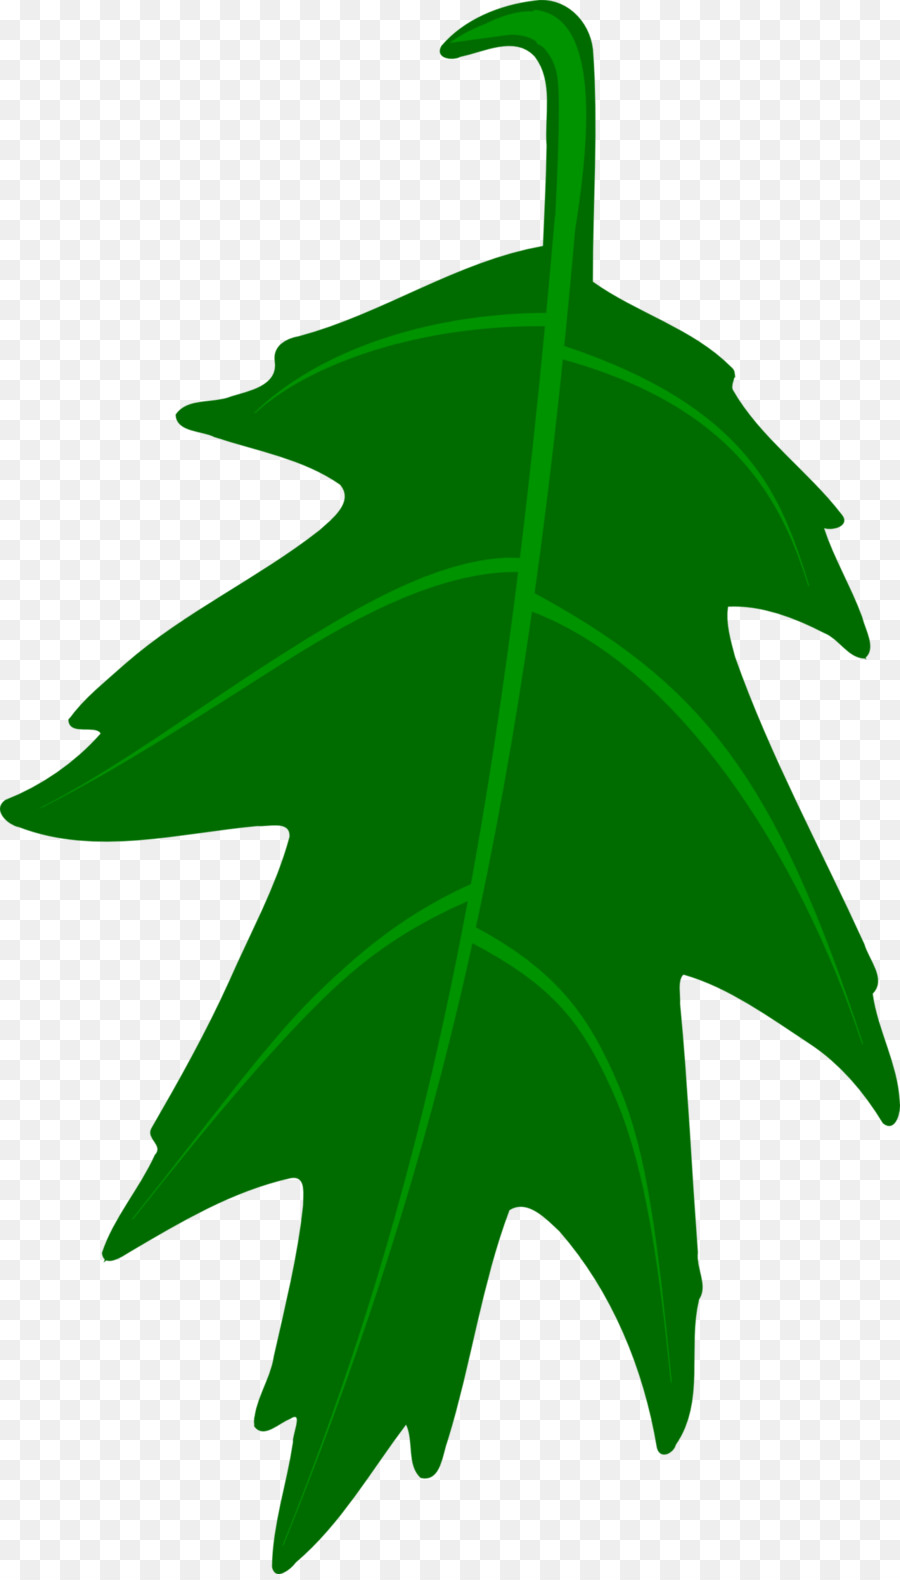 hight resolution of white oak english oak leaf plant png